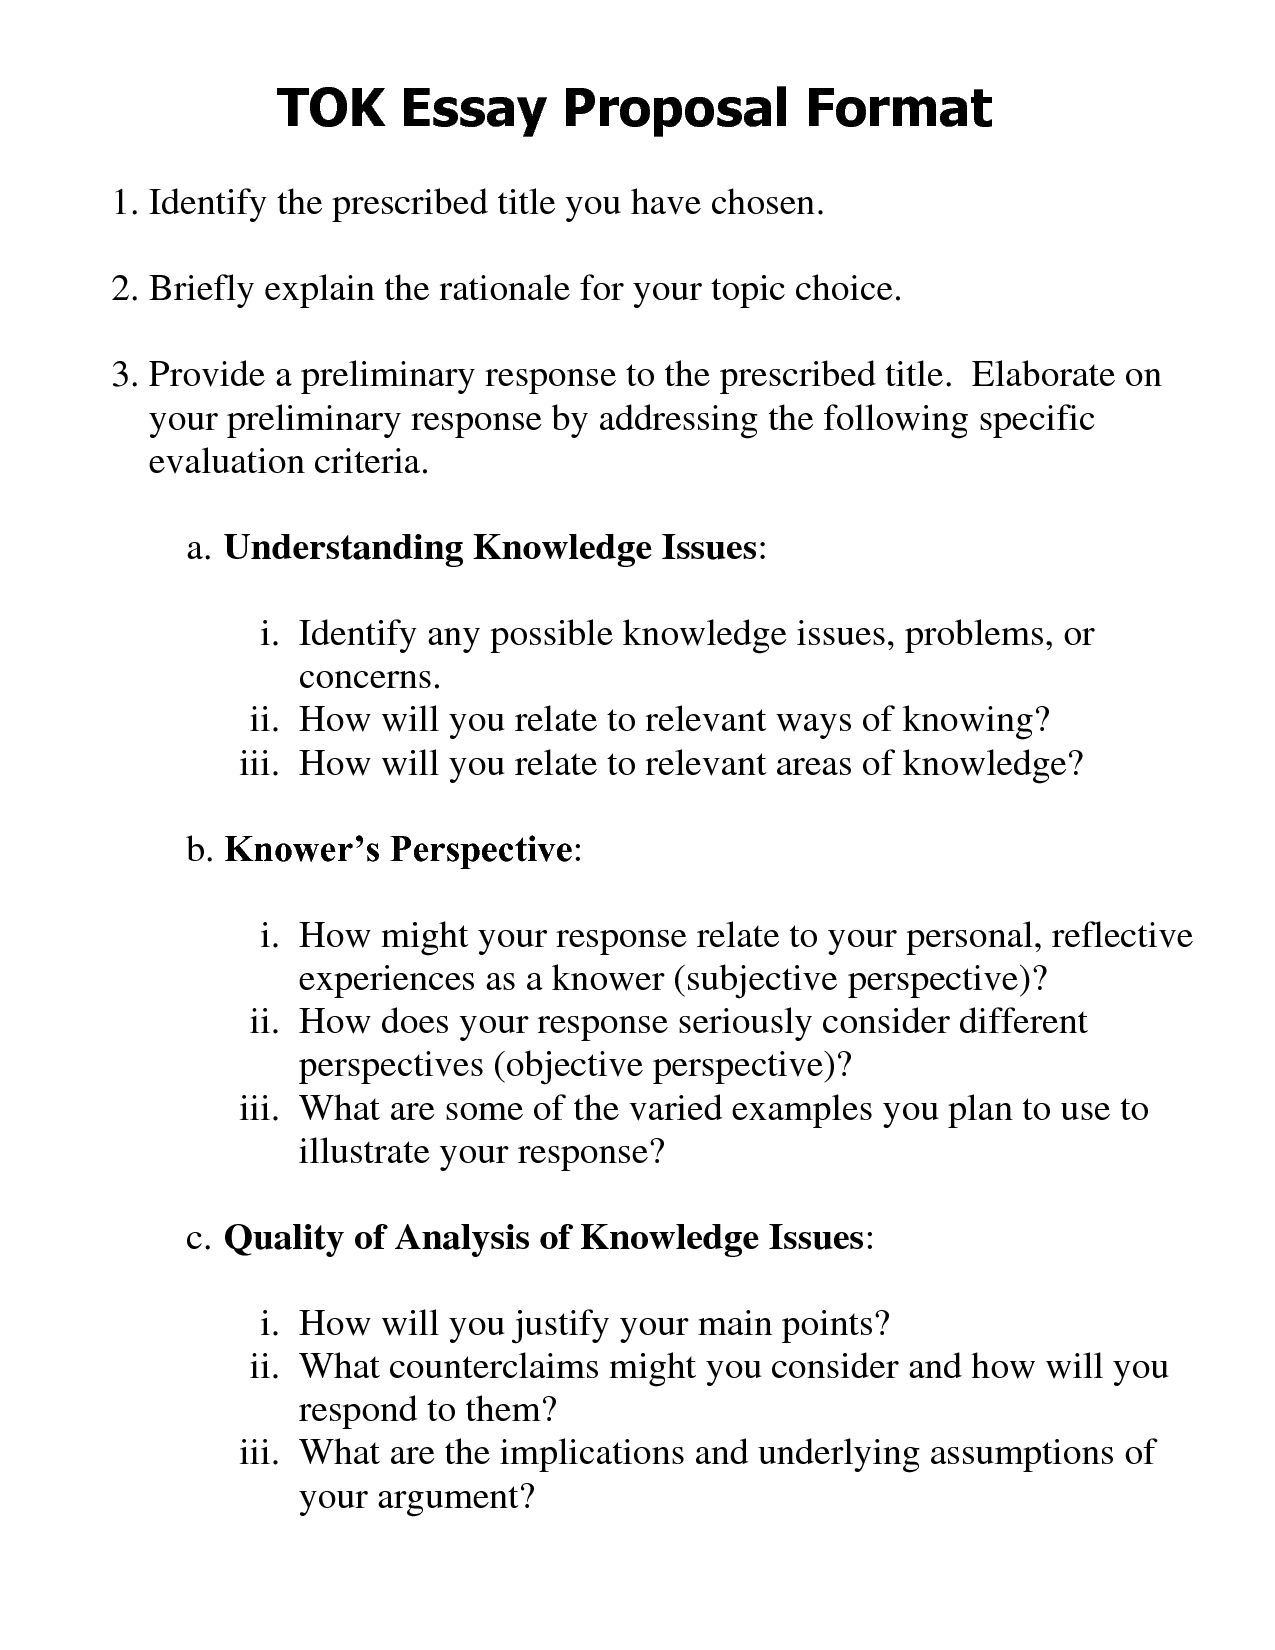 example essay format sample scholarship essay format essay formats example essay proposal paper essaywrite my thesis proposition custom writing company research proposal template bikeboulevardstucson